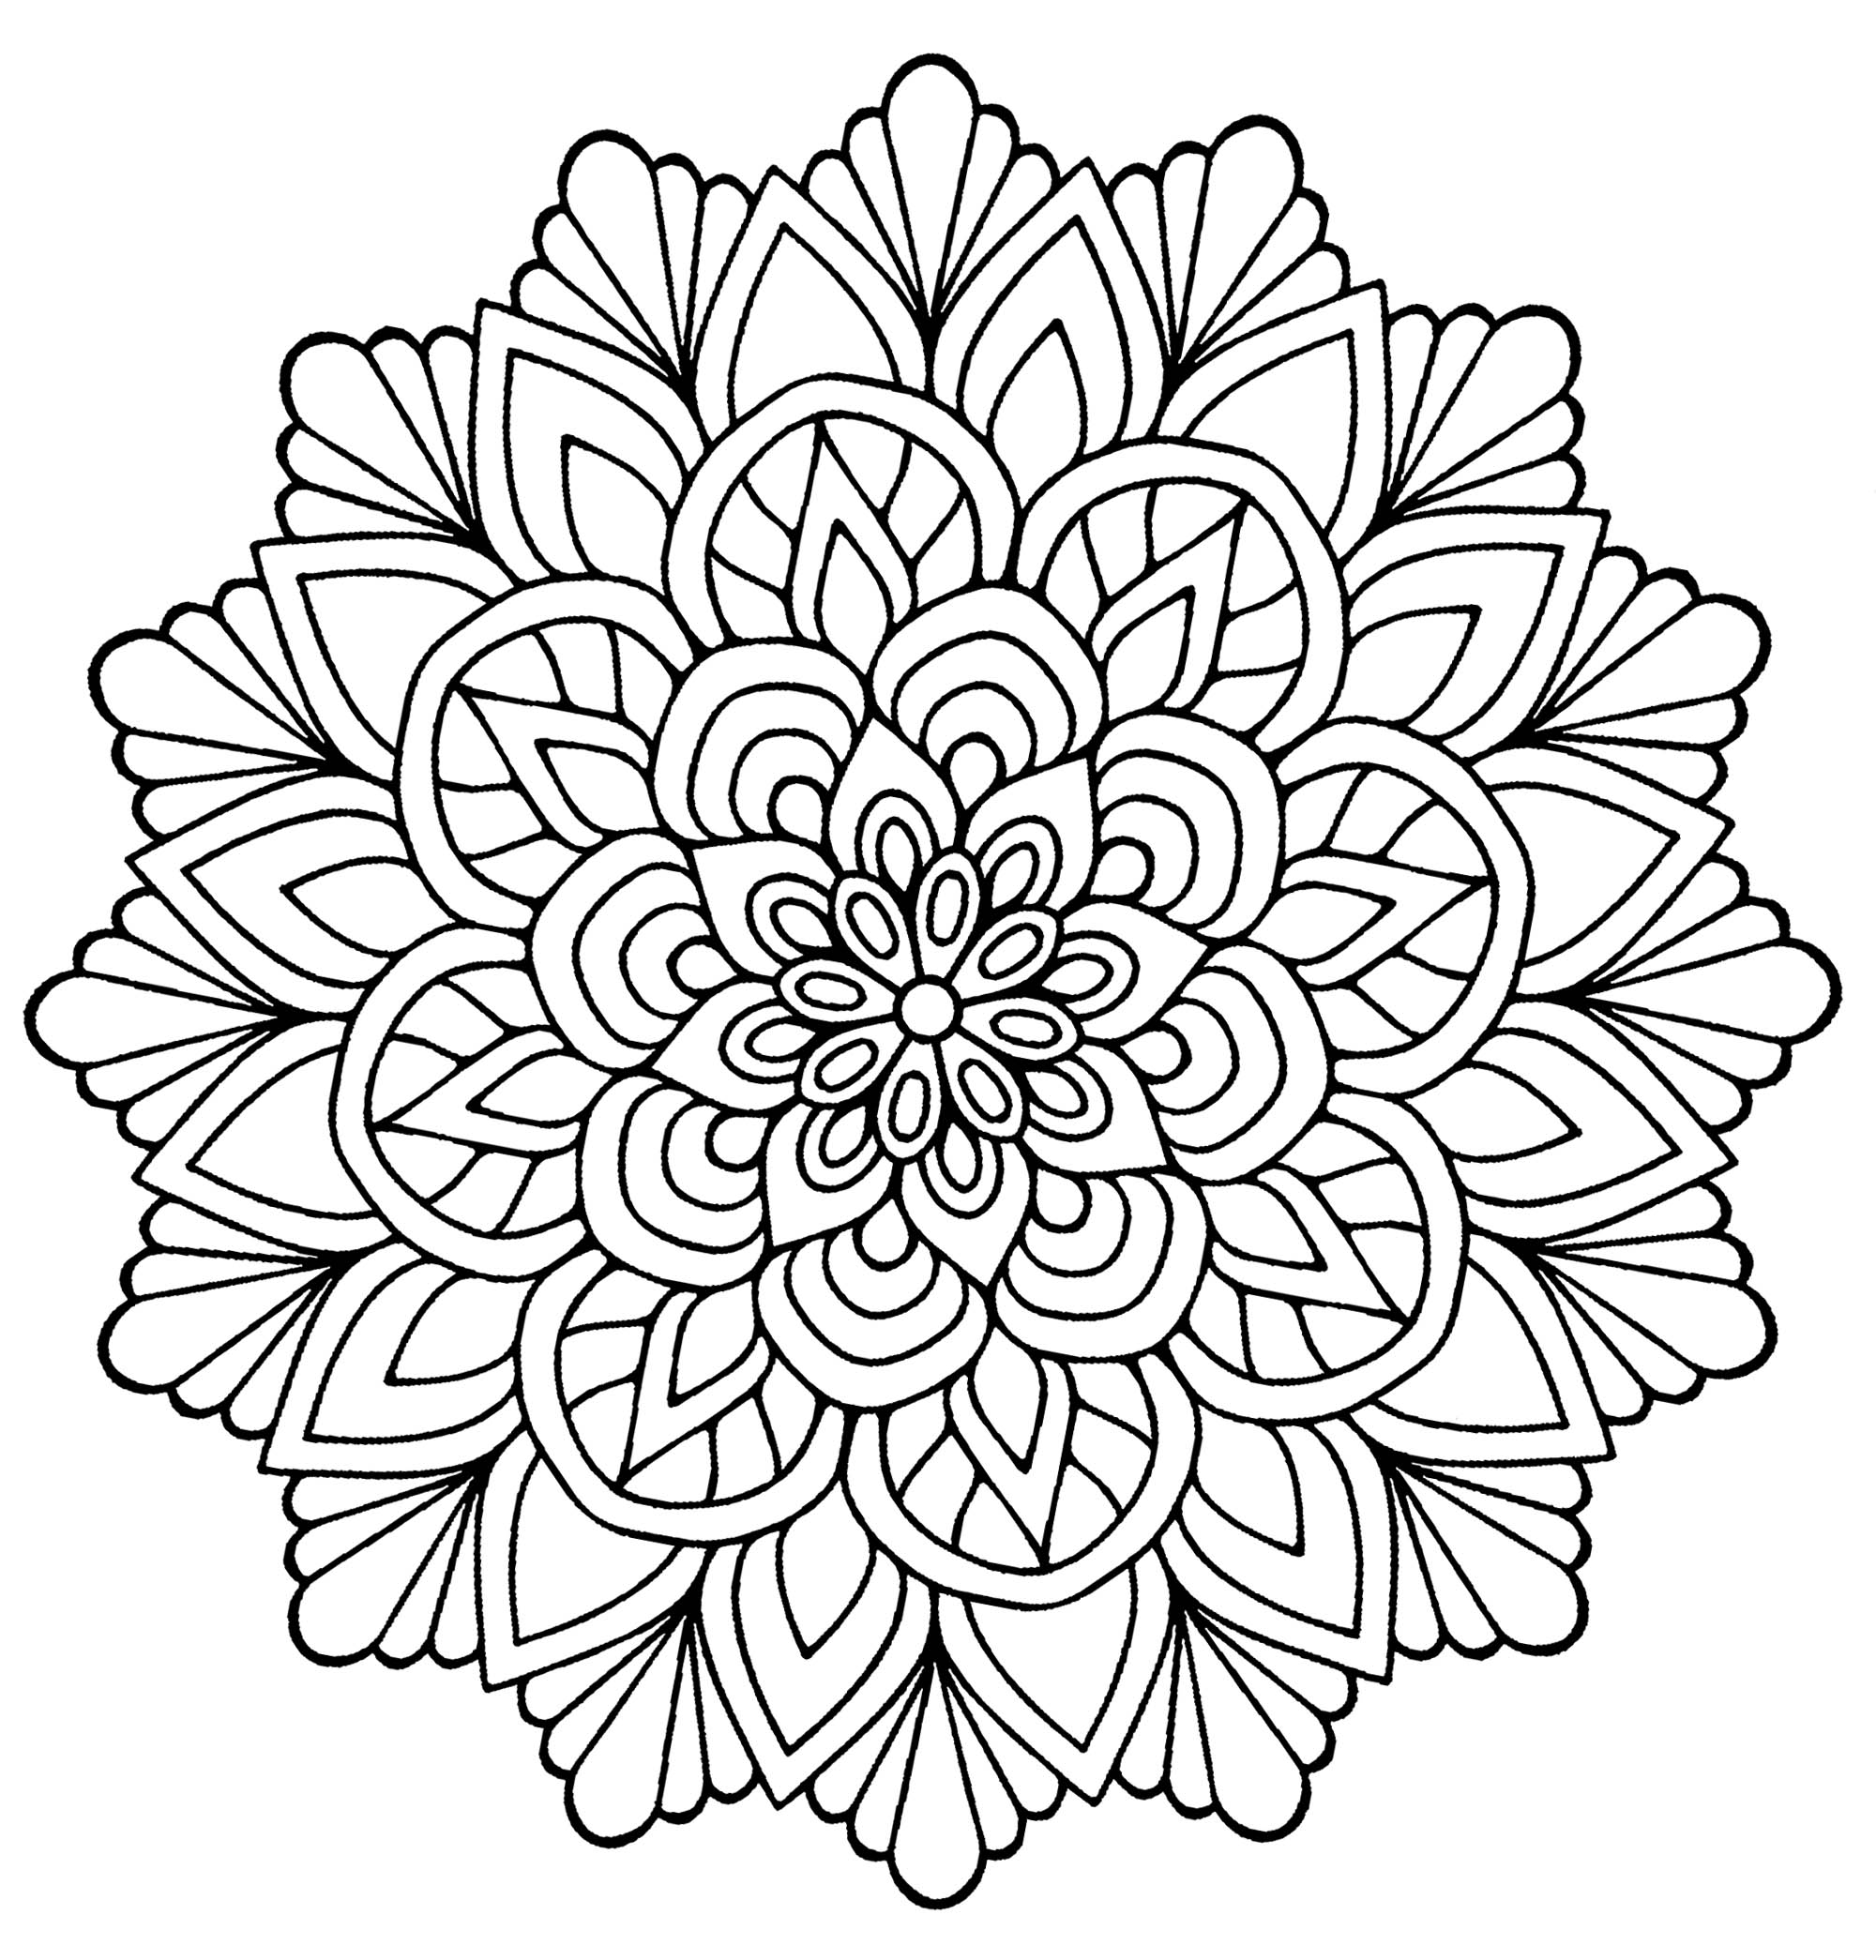 Mandala flowers and leaves mandalas with flowers for Coloring pages for adults difficult flower